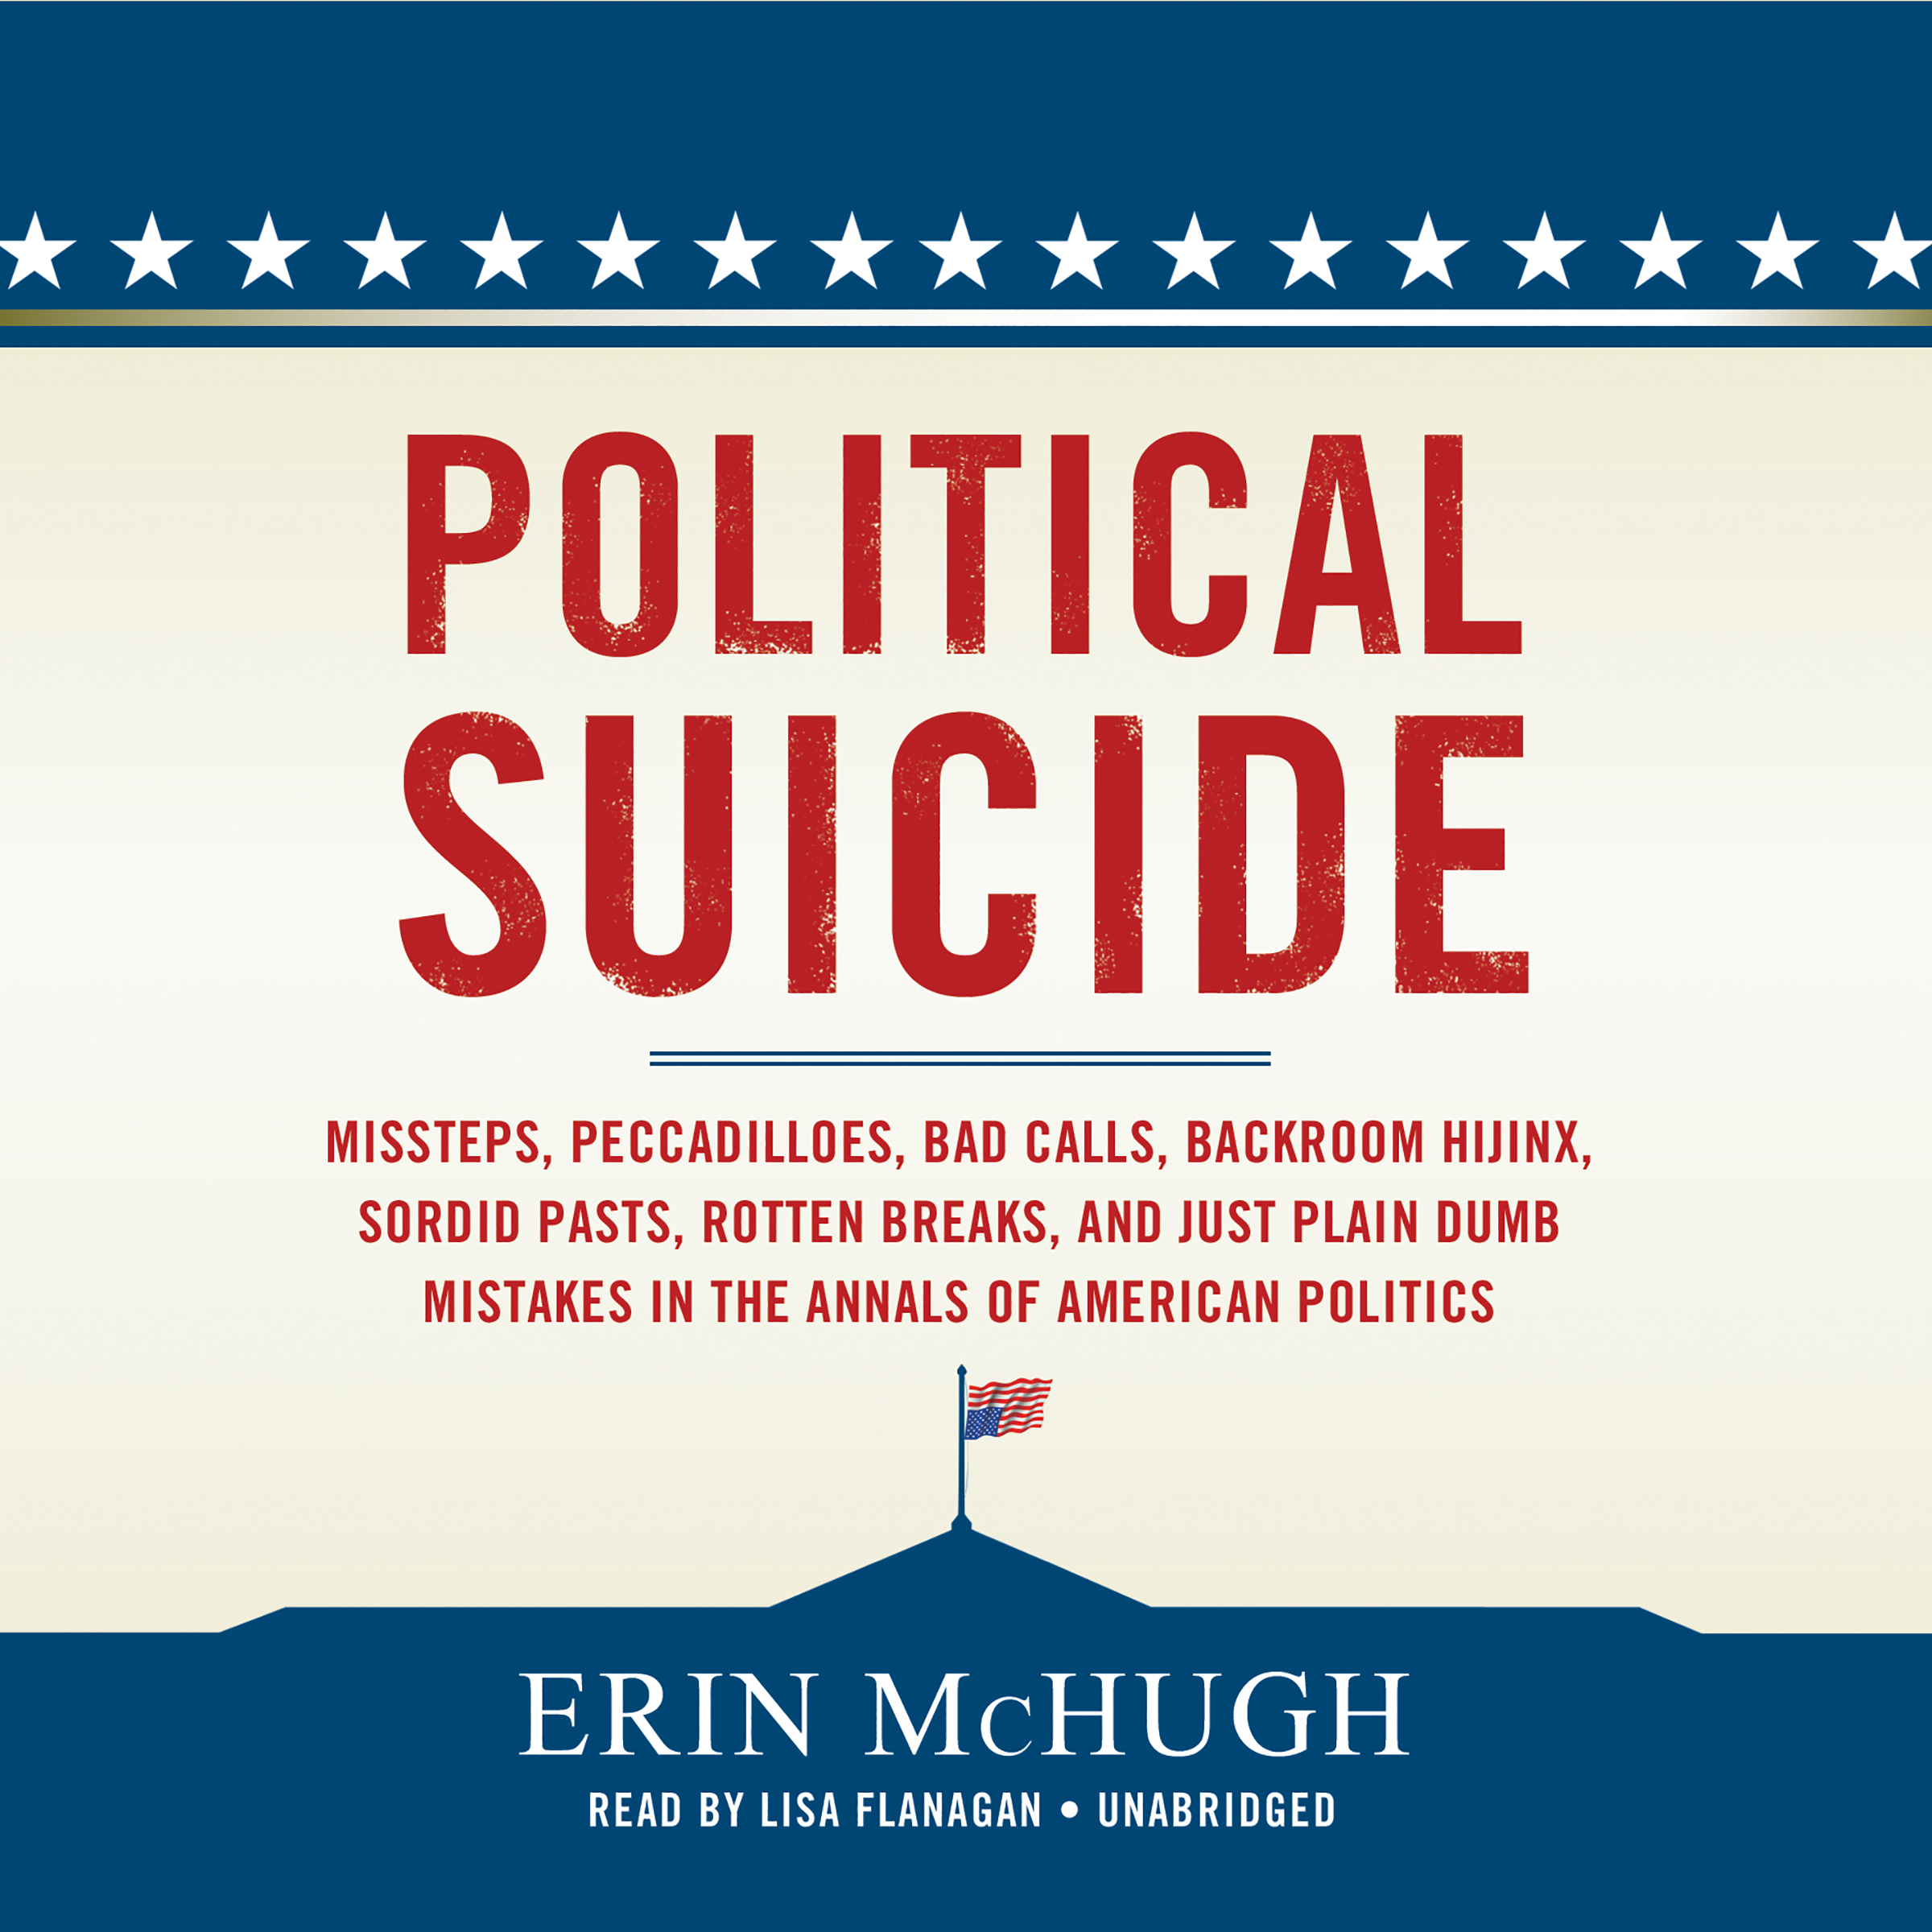 Printable Political Suicide: Missteps, Peccadilloes, Bad Calls, Backroom Hijinx, Sordid Pasts, Rotten Breaks, and Just Plain Dumb Mistakes in the Annals of American Politics Audiobook Cover Art